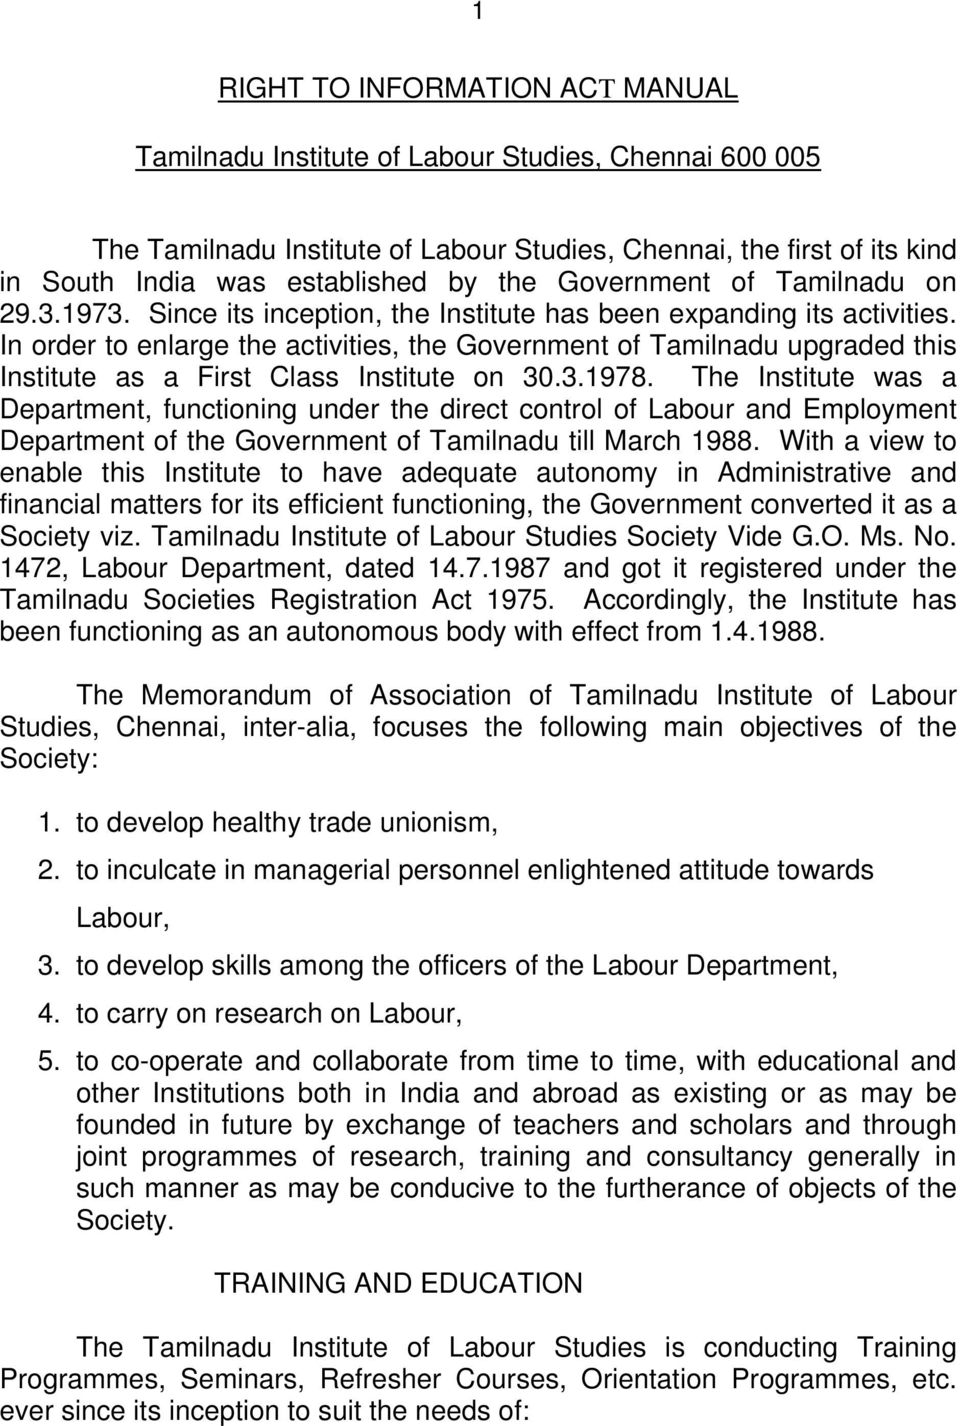 In order to enlarge the activities, the Government of Tamilnadu upgraded  this Institute as a